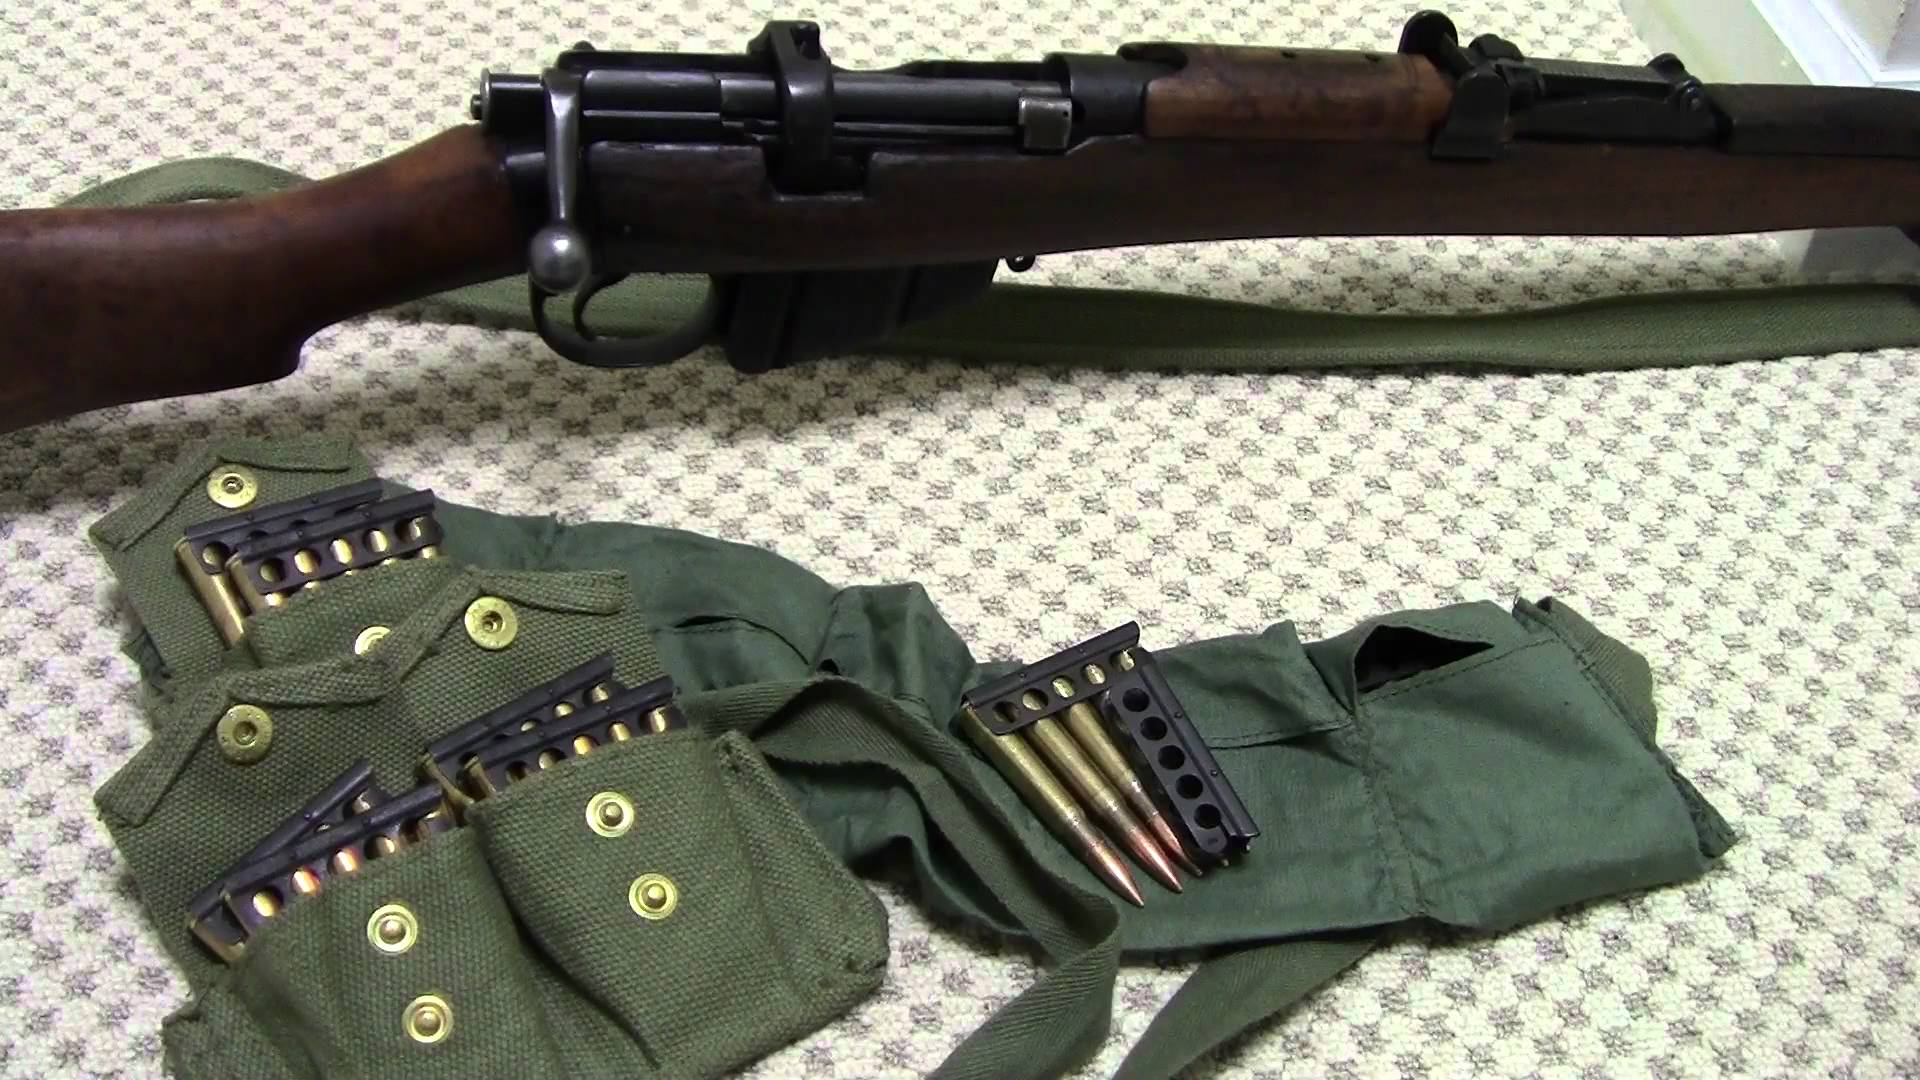 HQ Lee Enfield Mk Iii Rifle Wallpapers | File 275.2Kb